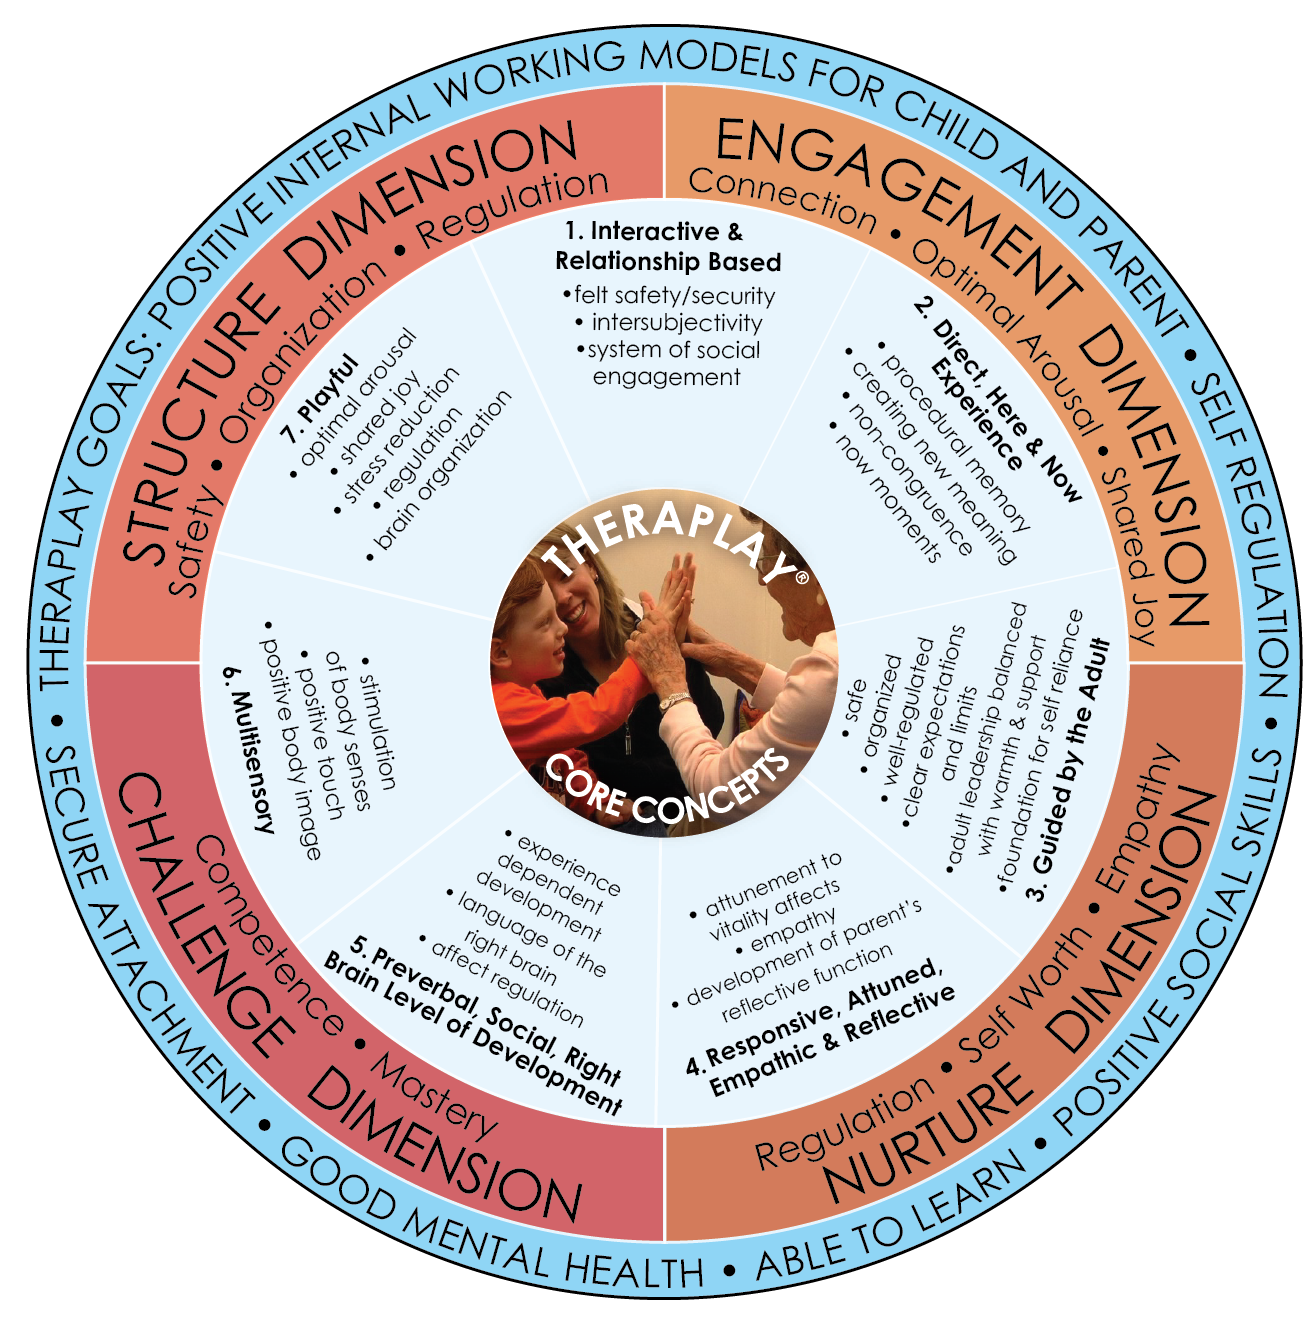 Core Concepts Of Theraplay